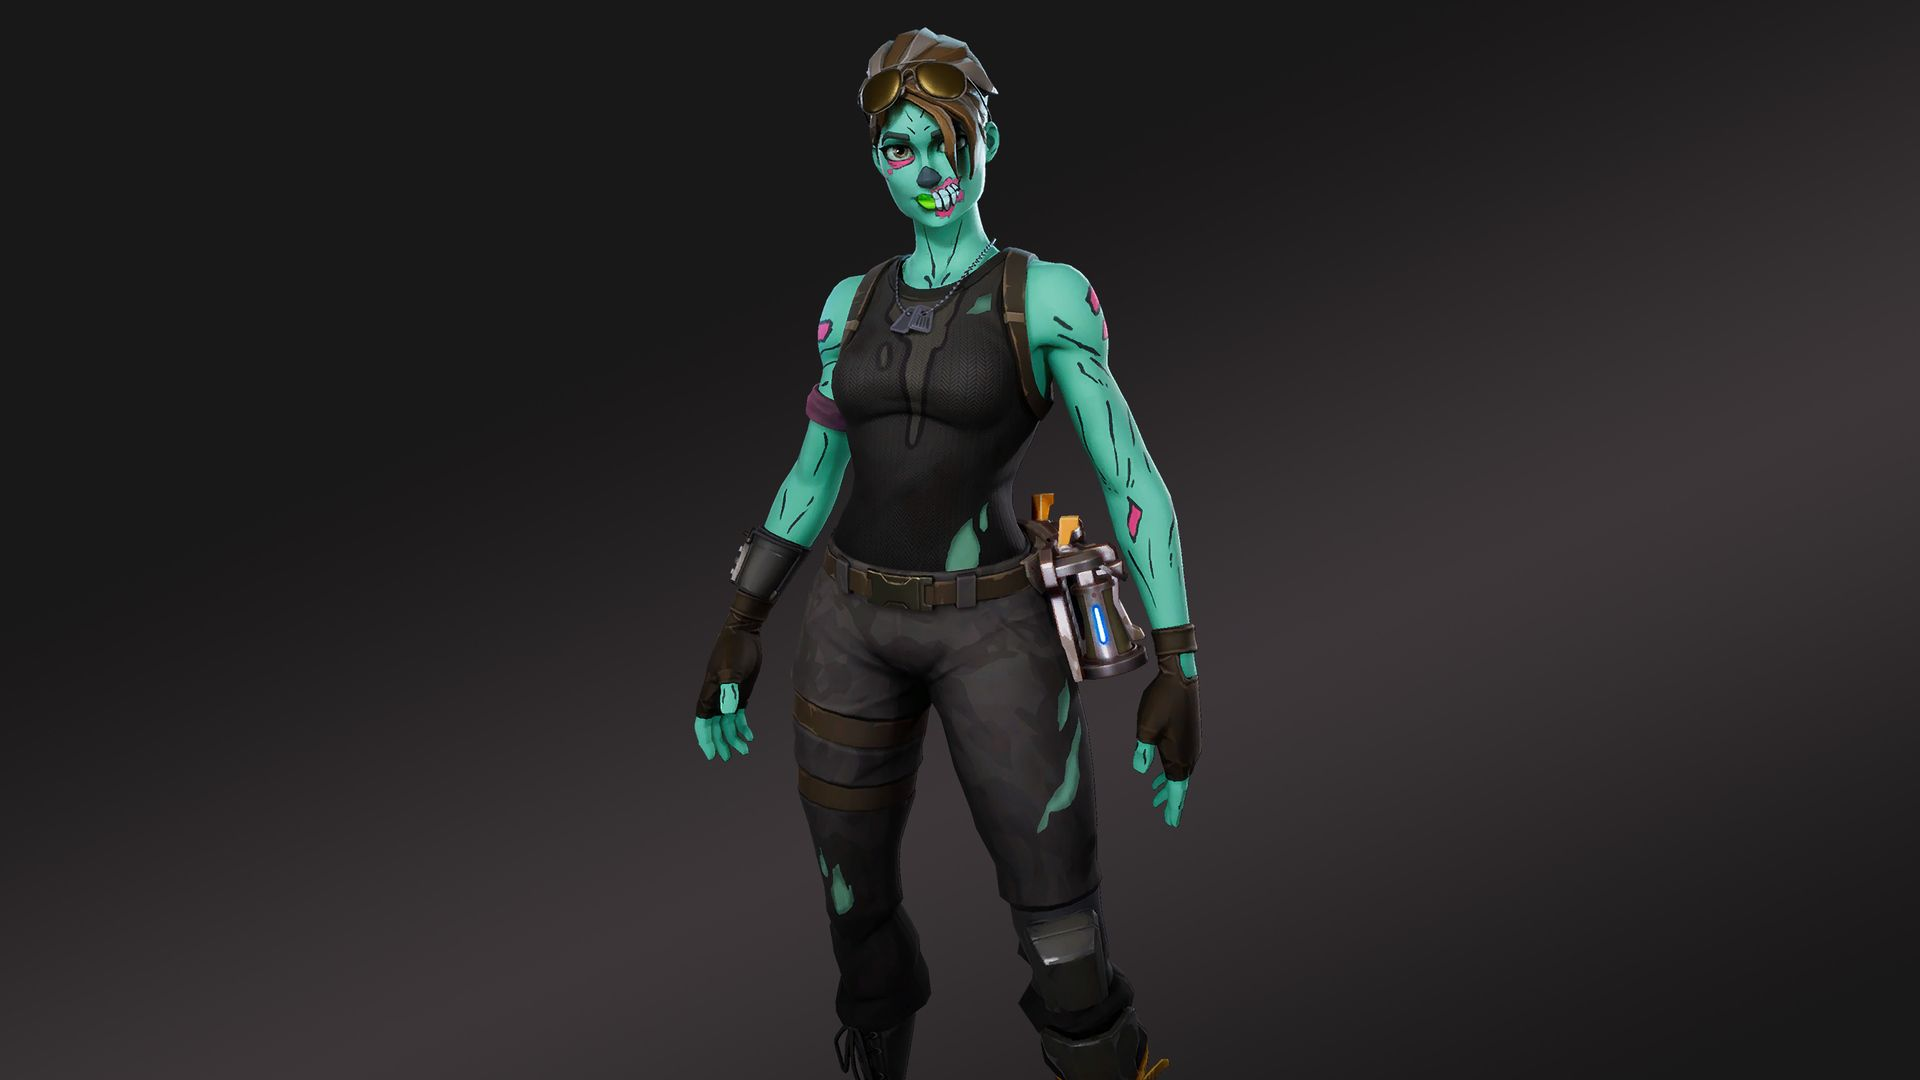 1920x1080 HD Wallpaper of Ghoul Trooper Fortnite Battle Royale Video.